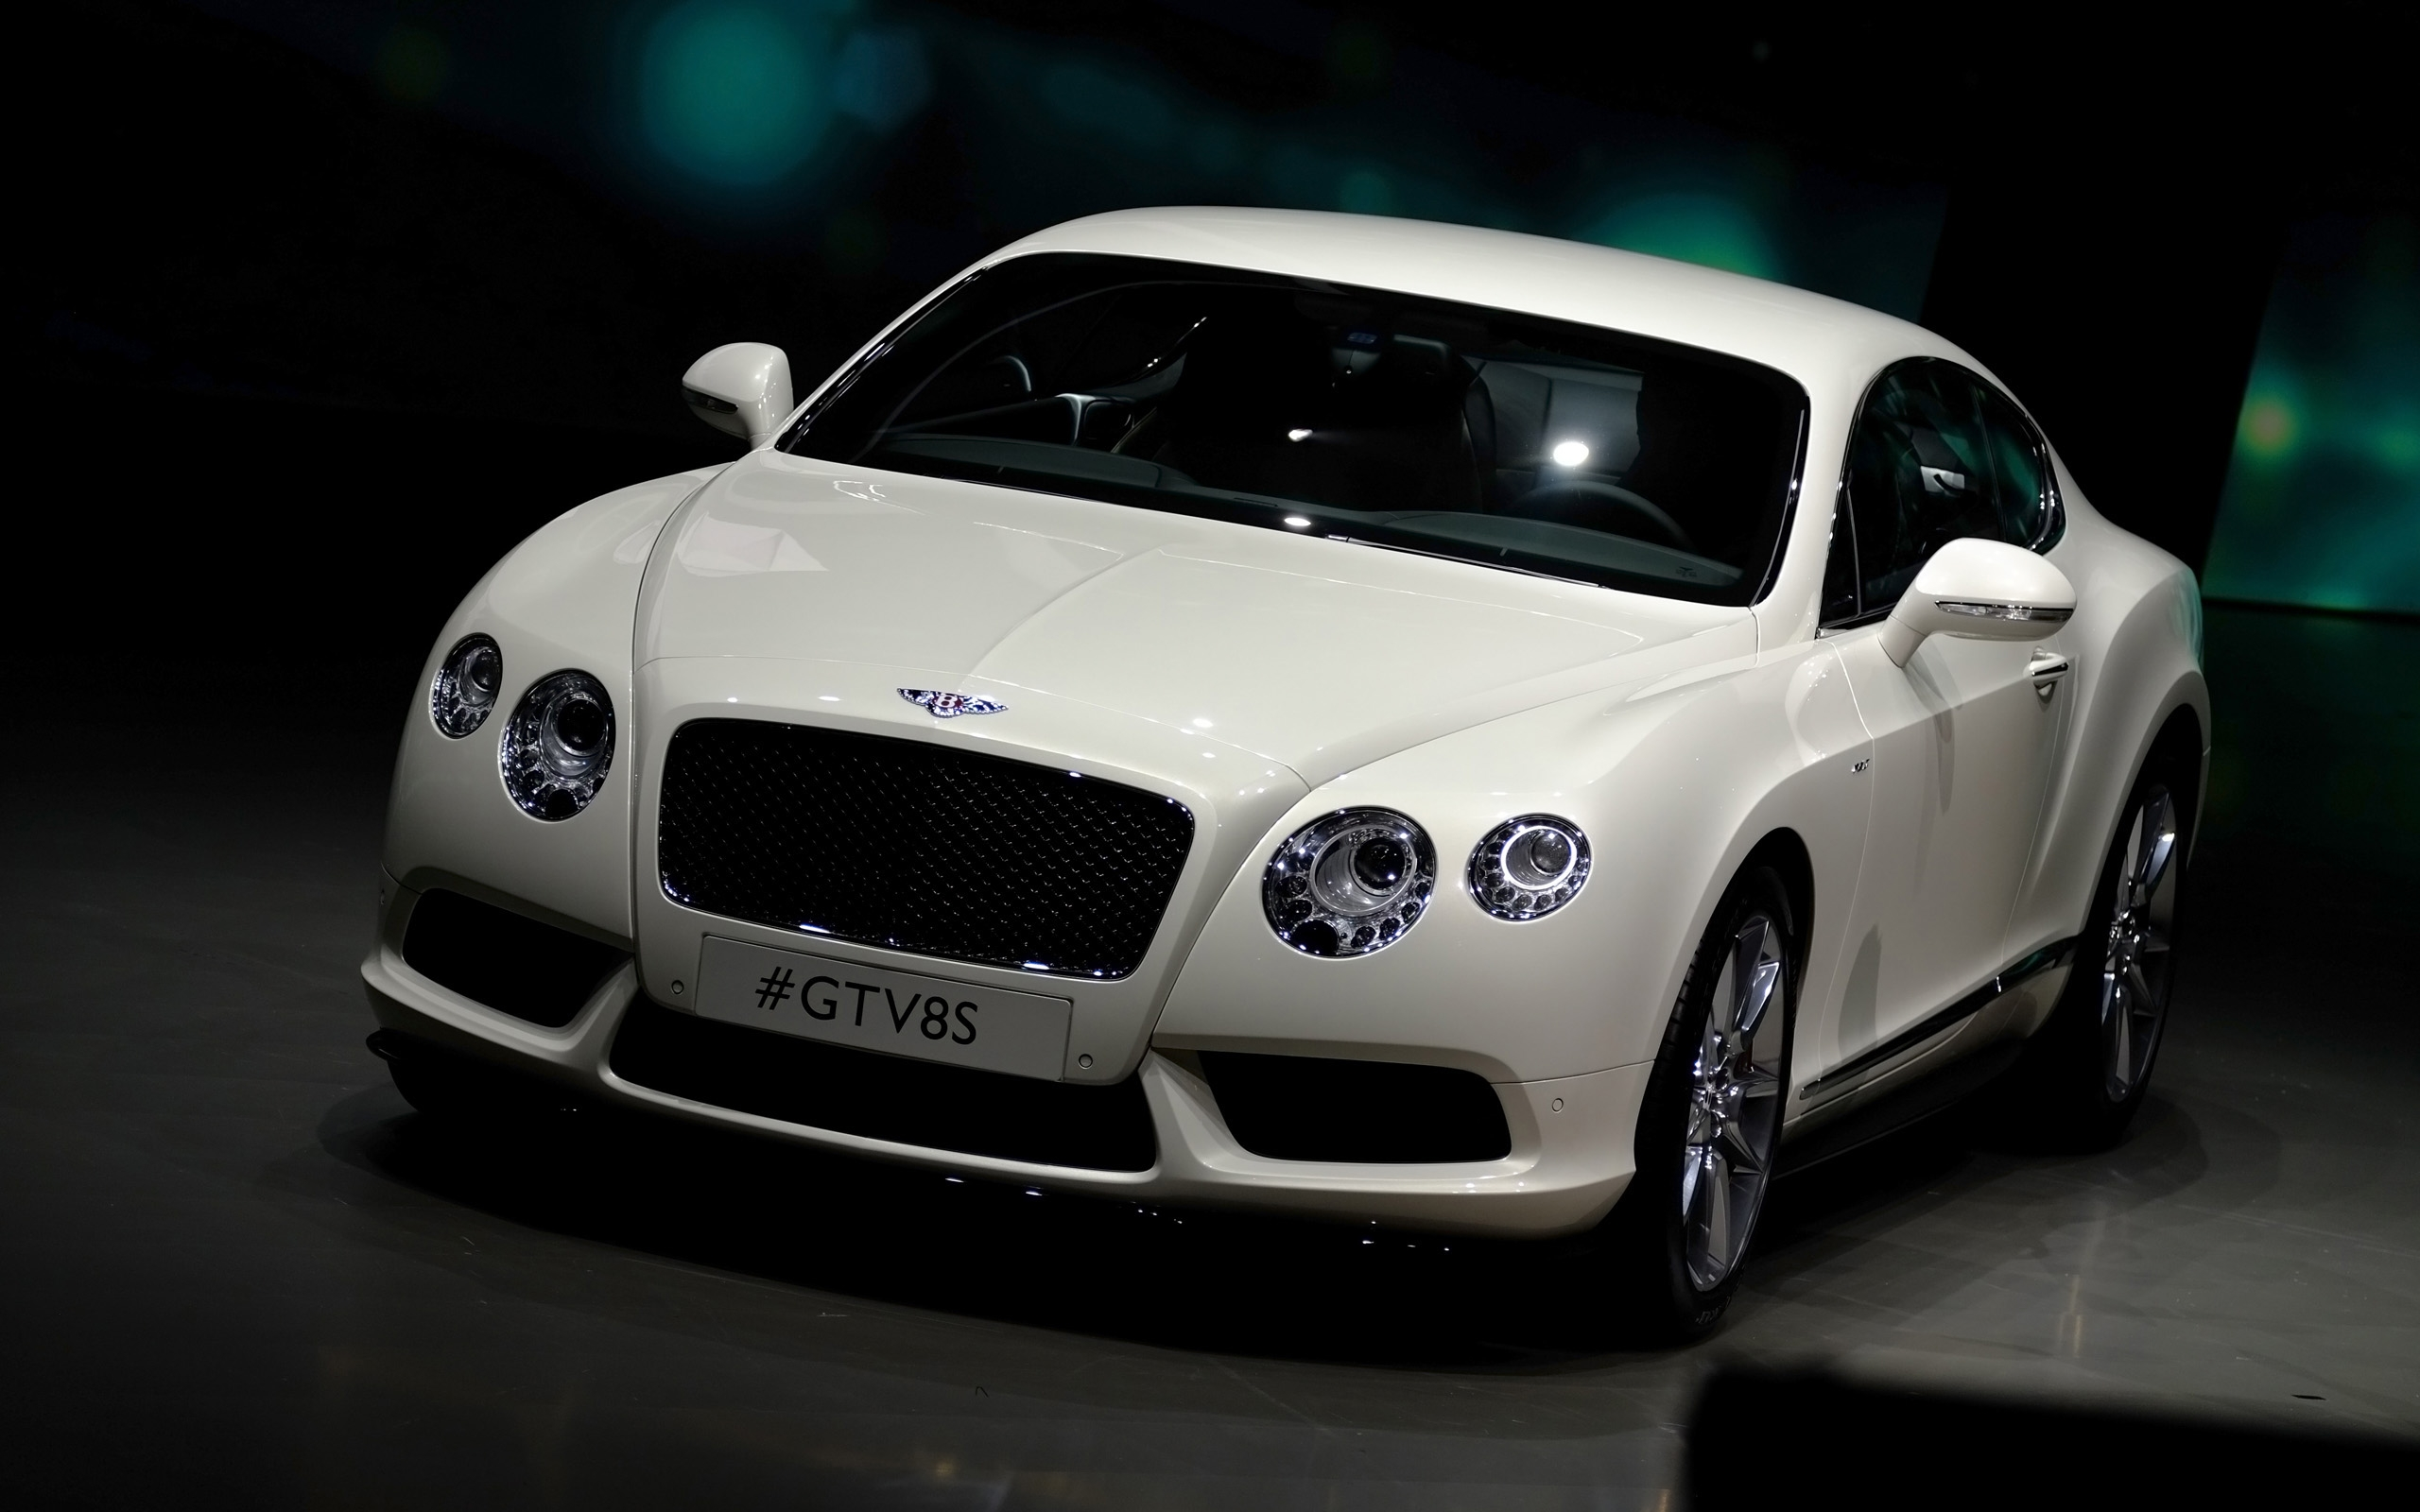 bentley-continental-v-s-at-iaa-frankfurt-motor-show-Bentley-Continental-V-wallpaper-wpc5801212